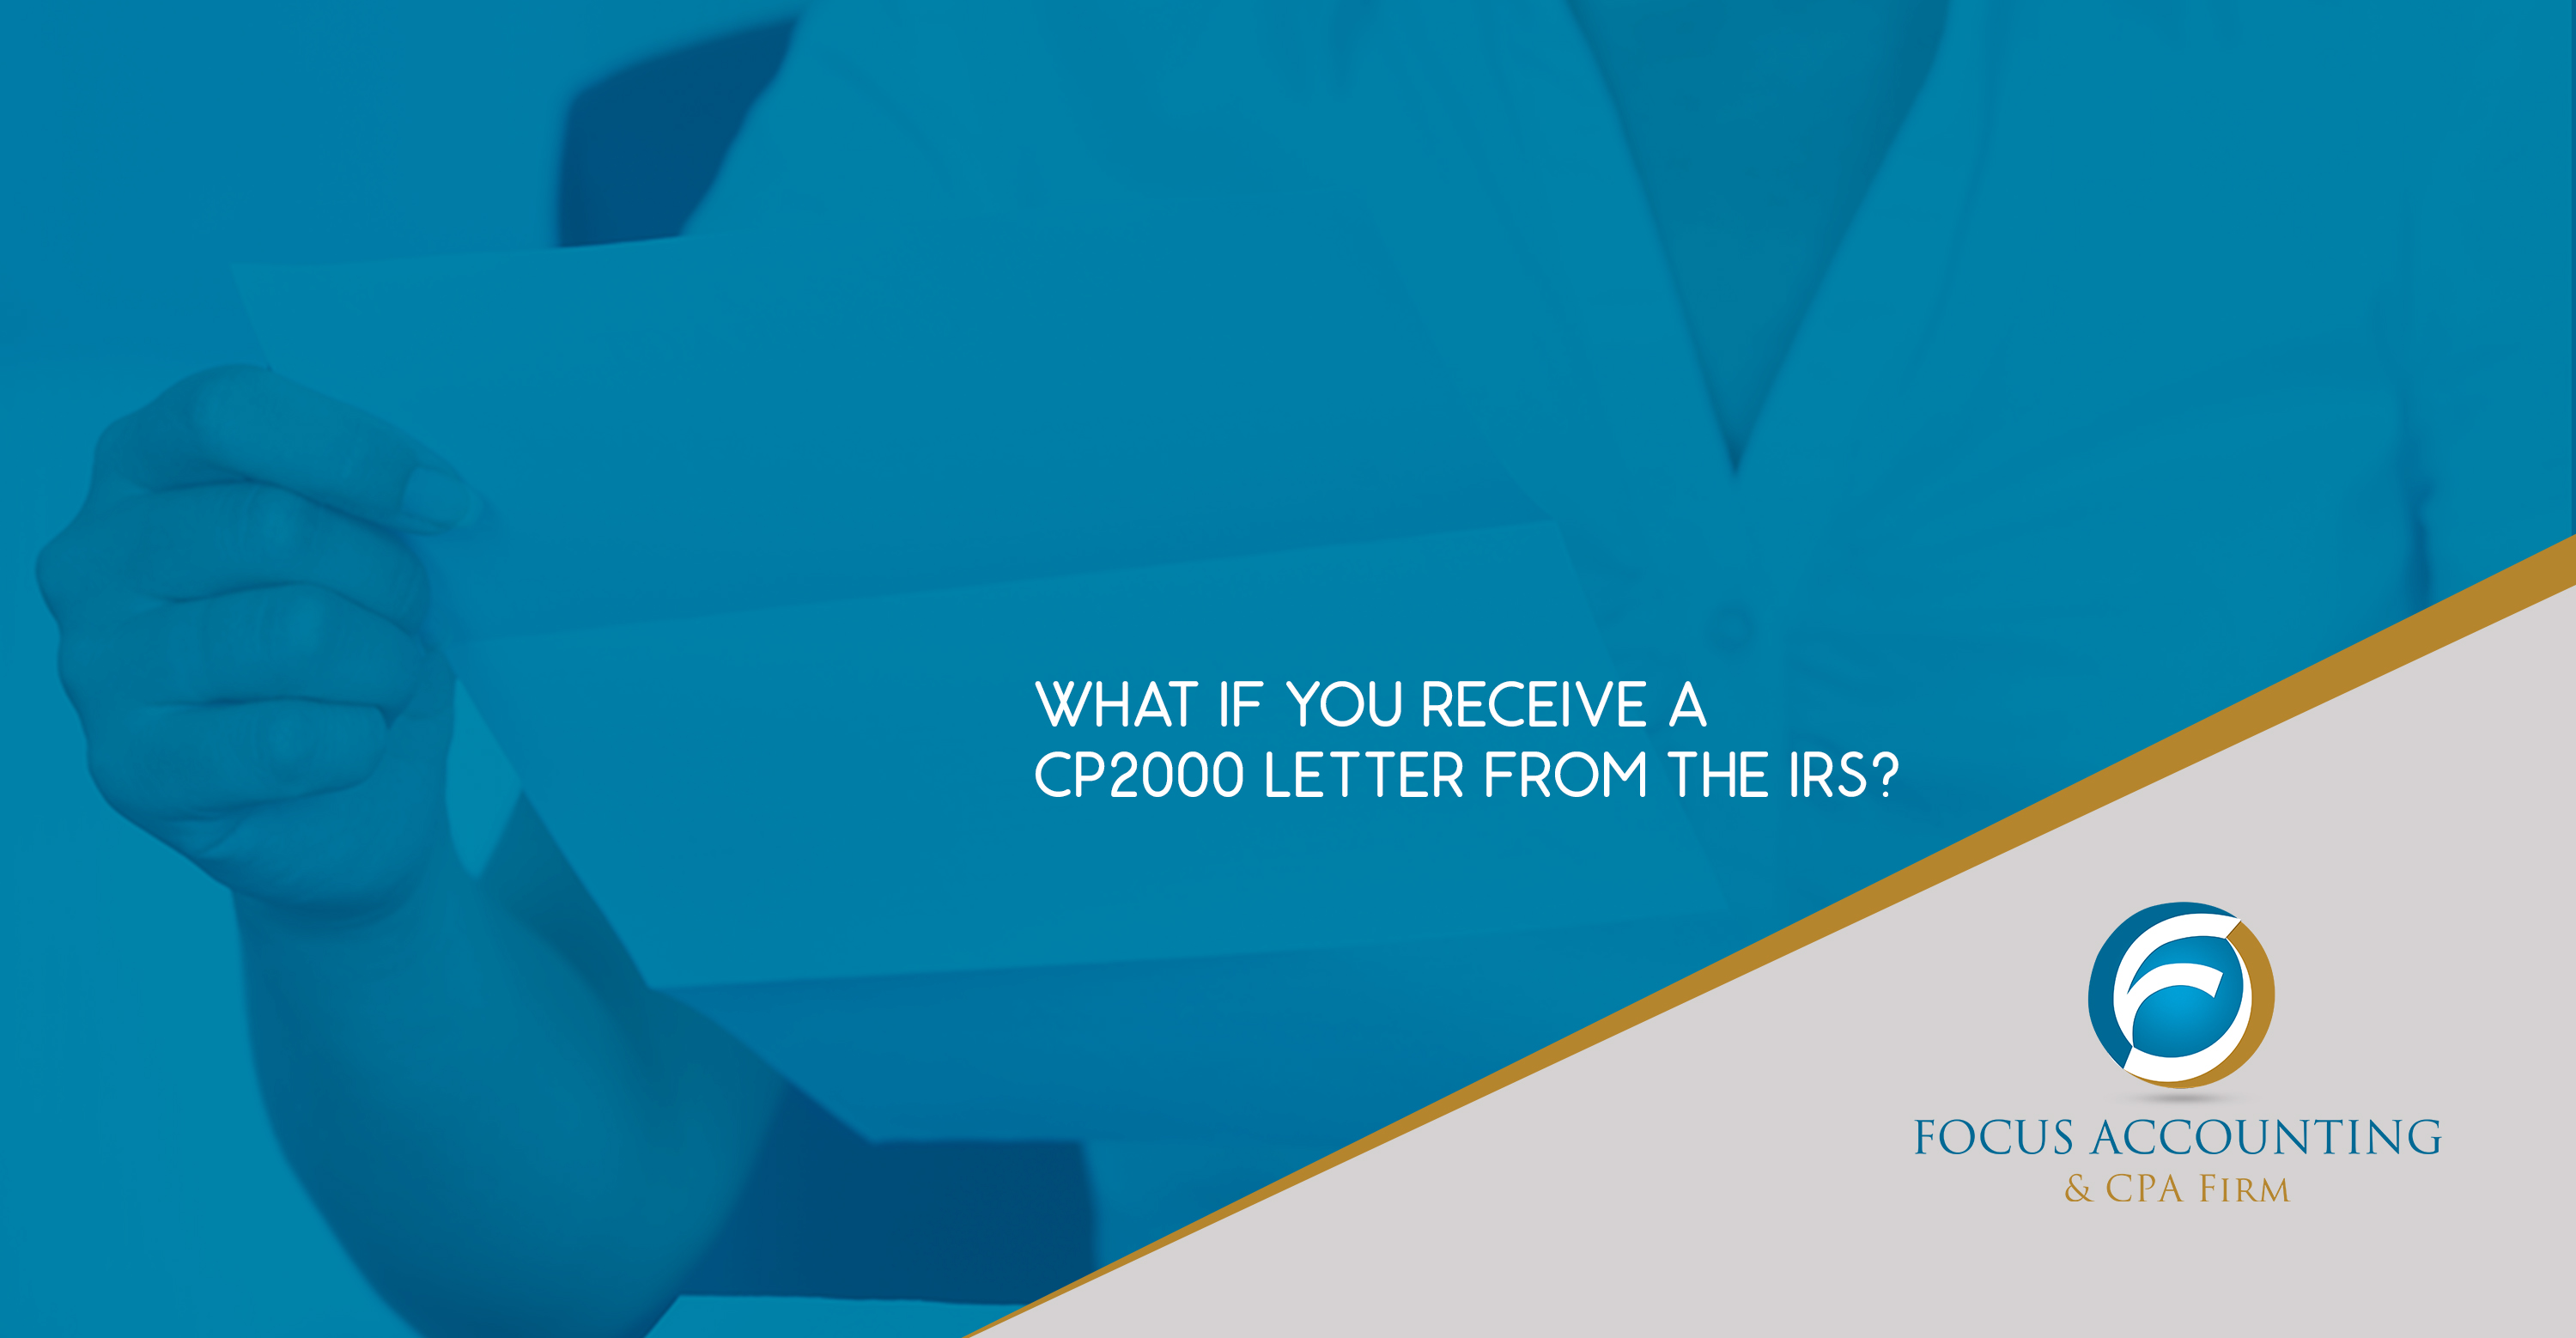 What if You Receive a Cp2000 Letters from the Irs